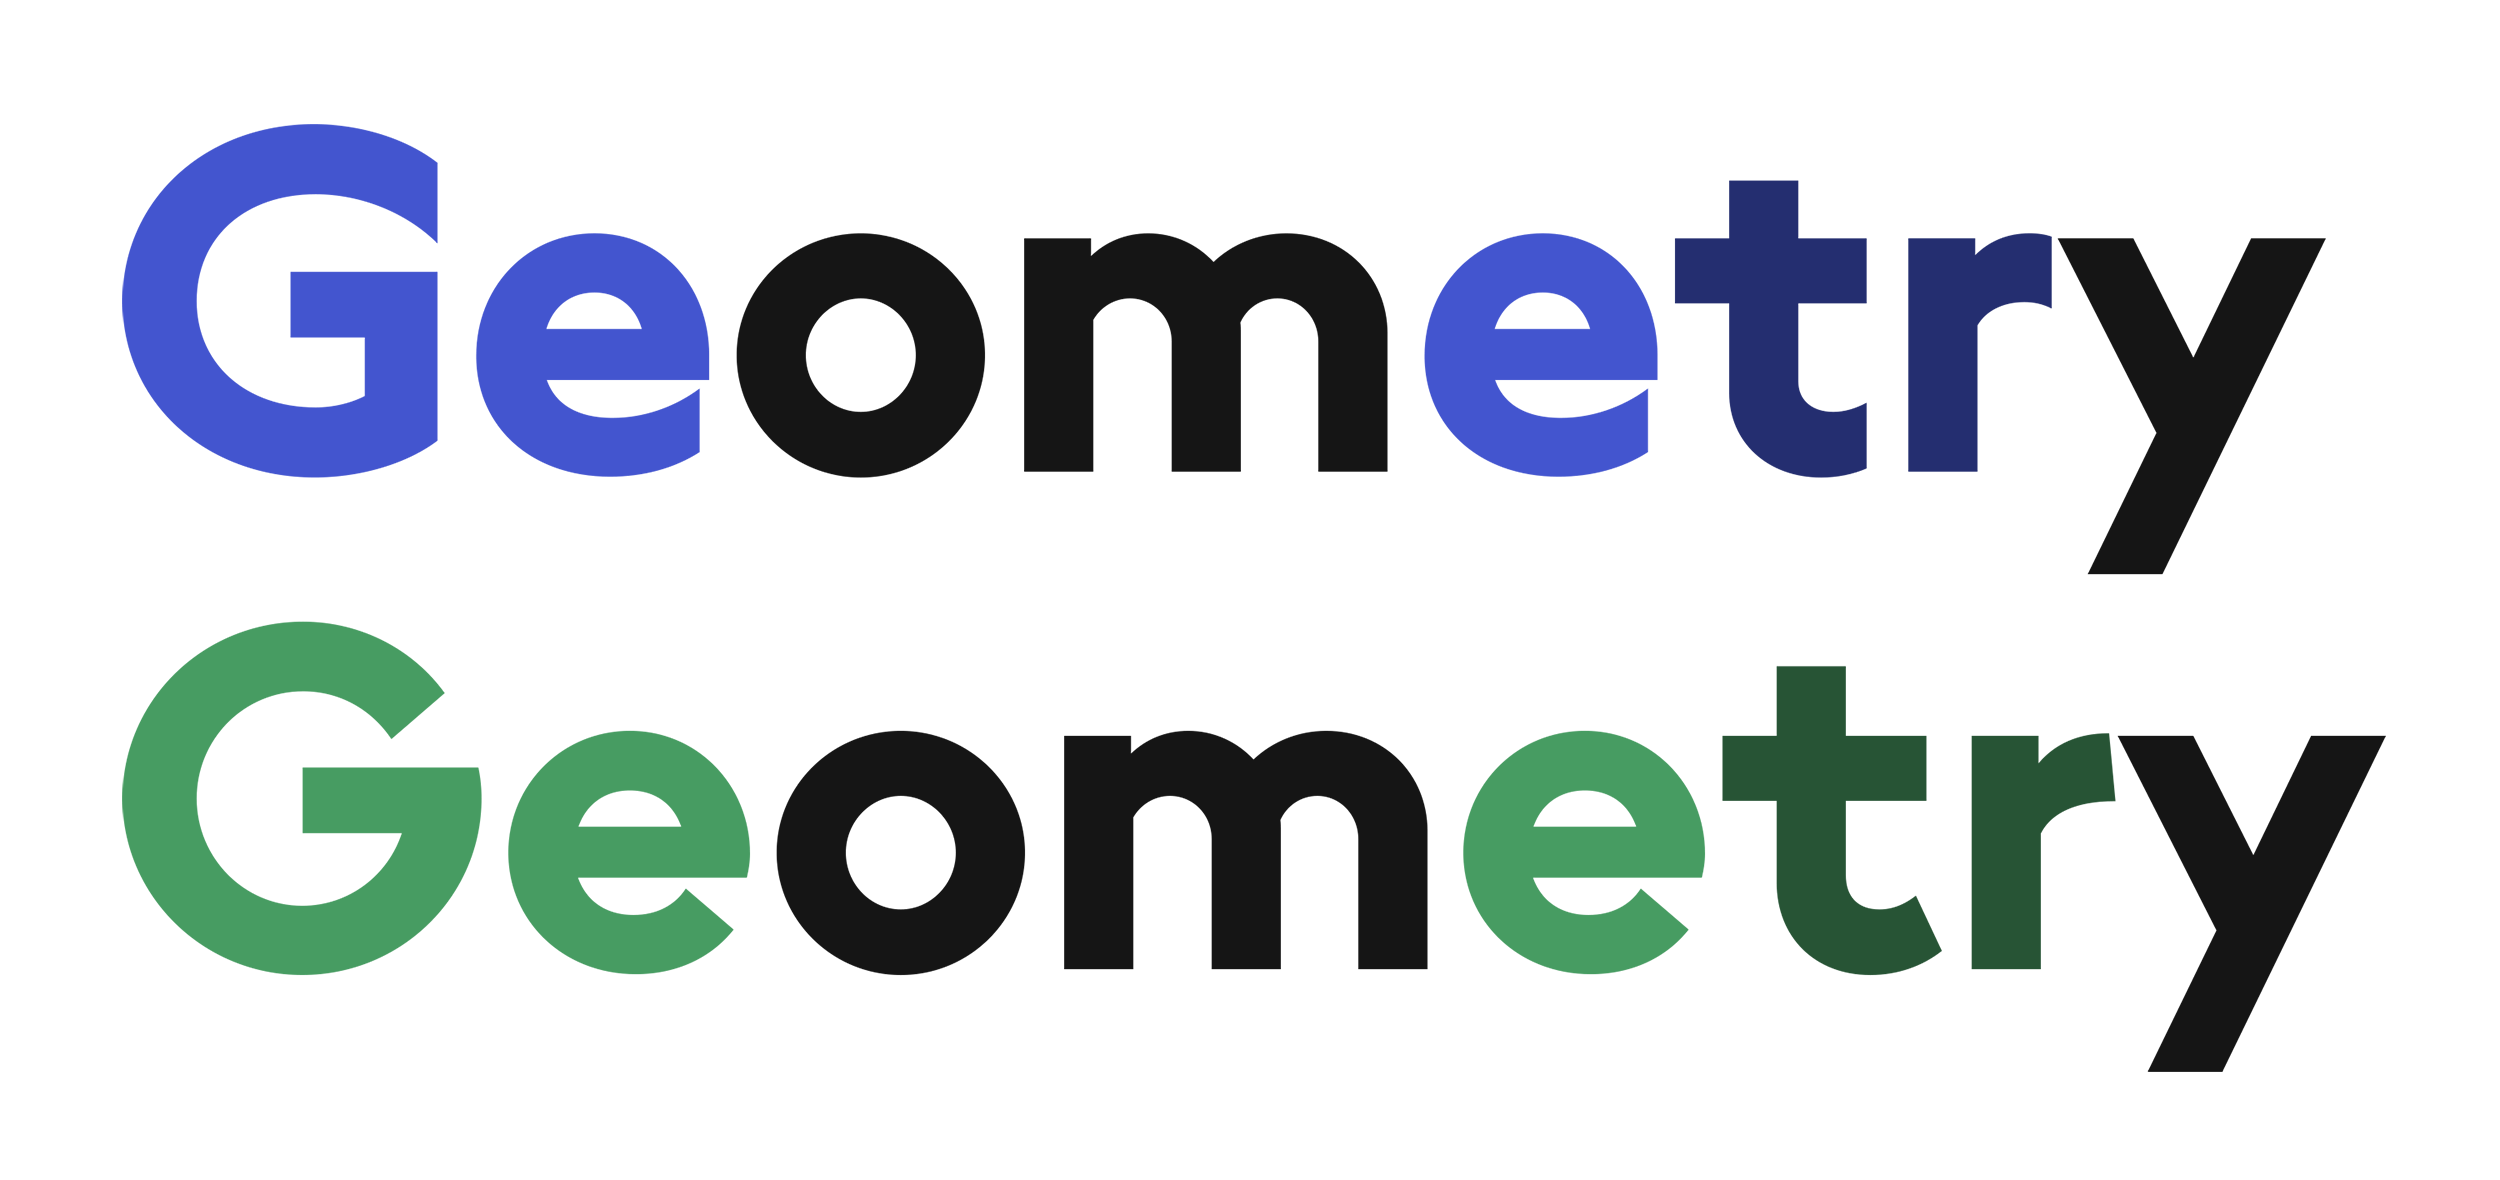 Type Mates Grato Gratimo Classic Grotesk Geometric Font About02 Change Style